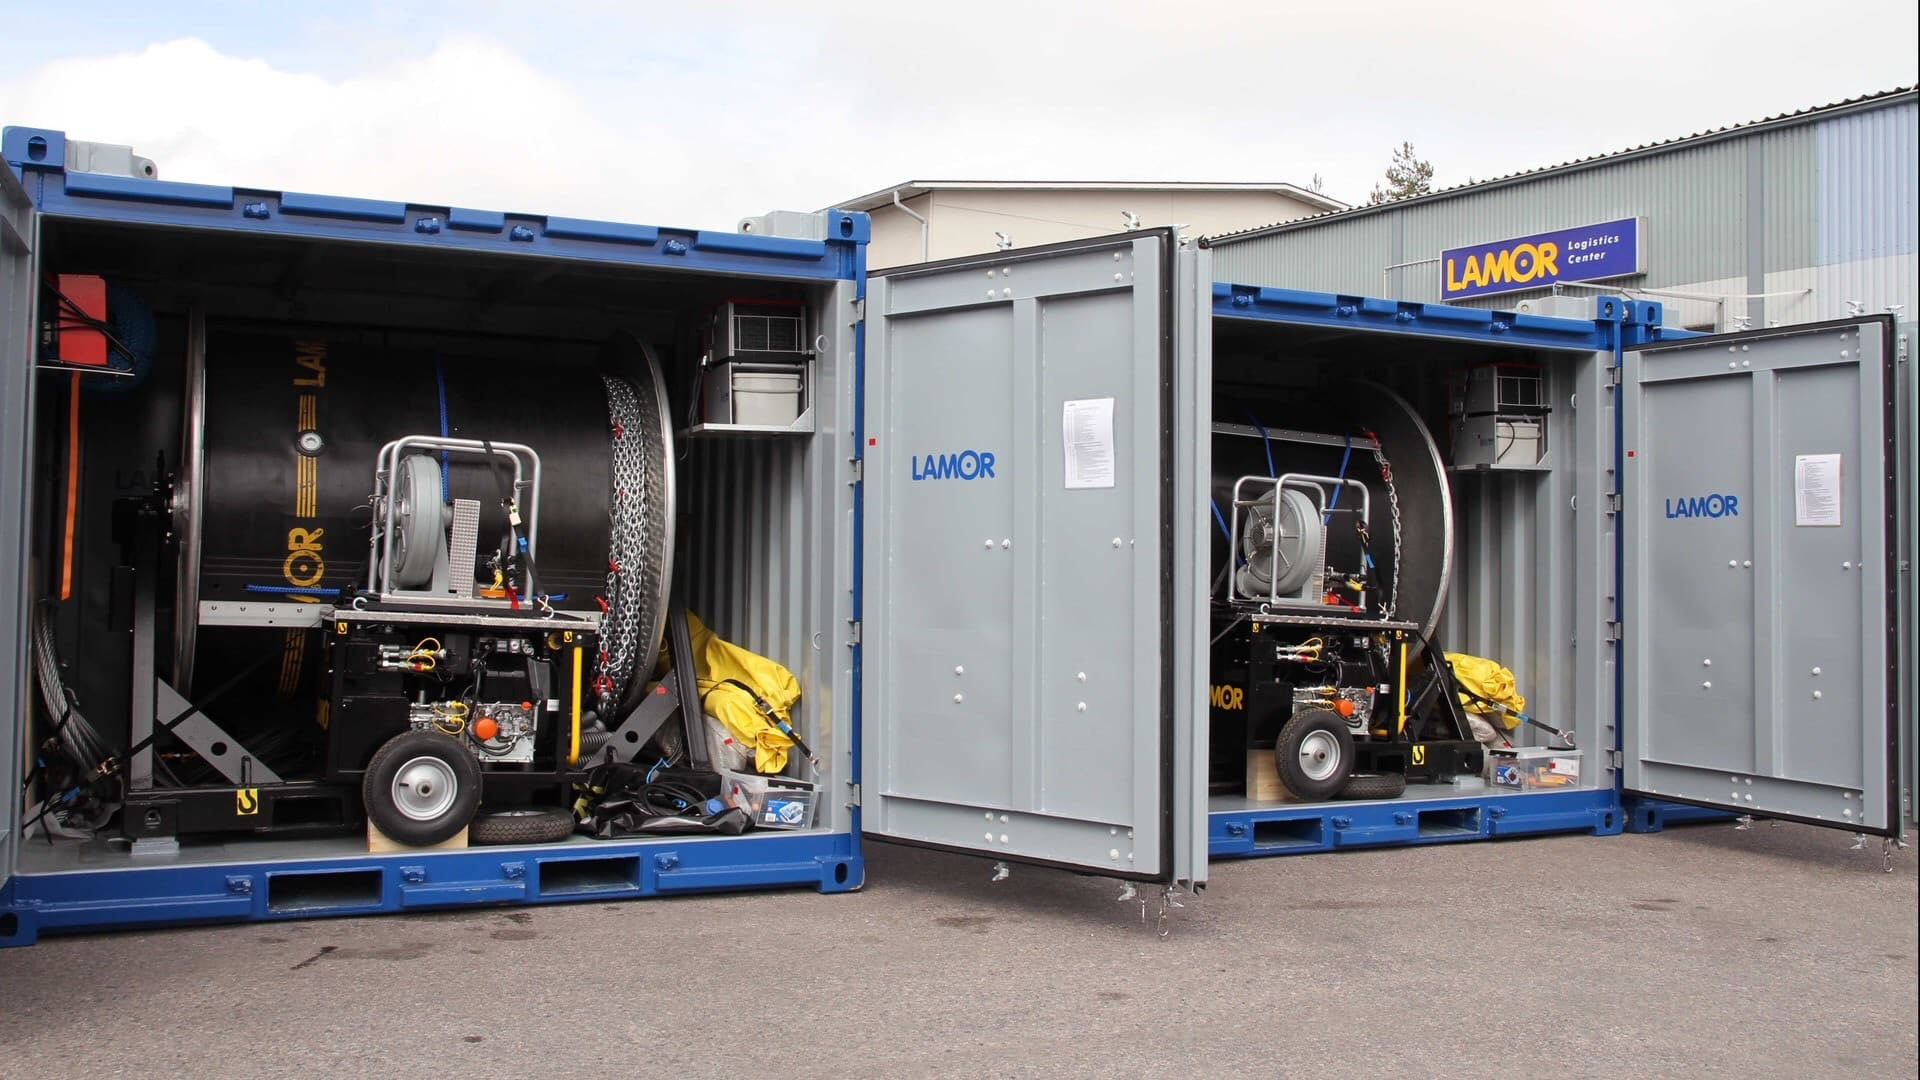 Lamor Equipment shipping for Emergencies in Containers